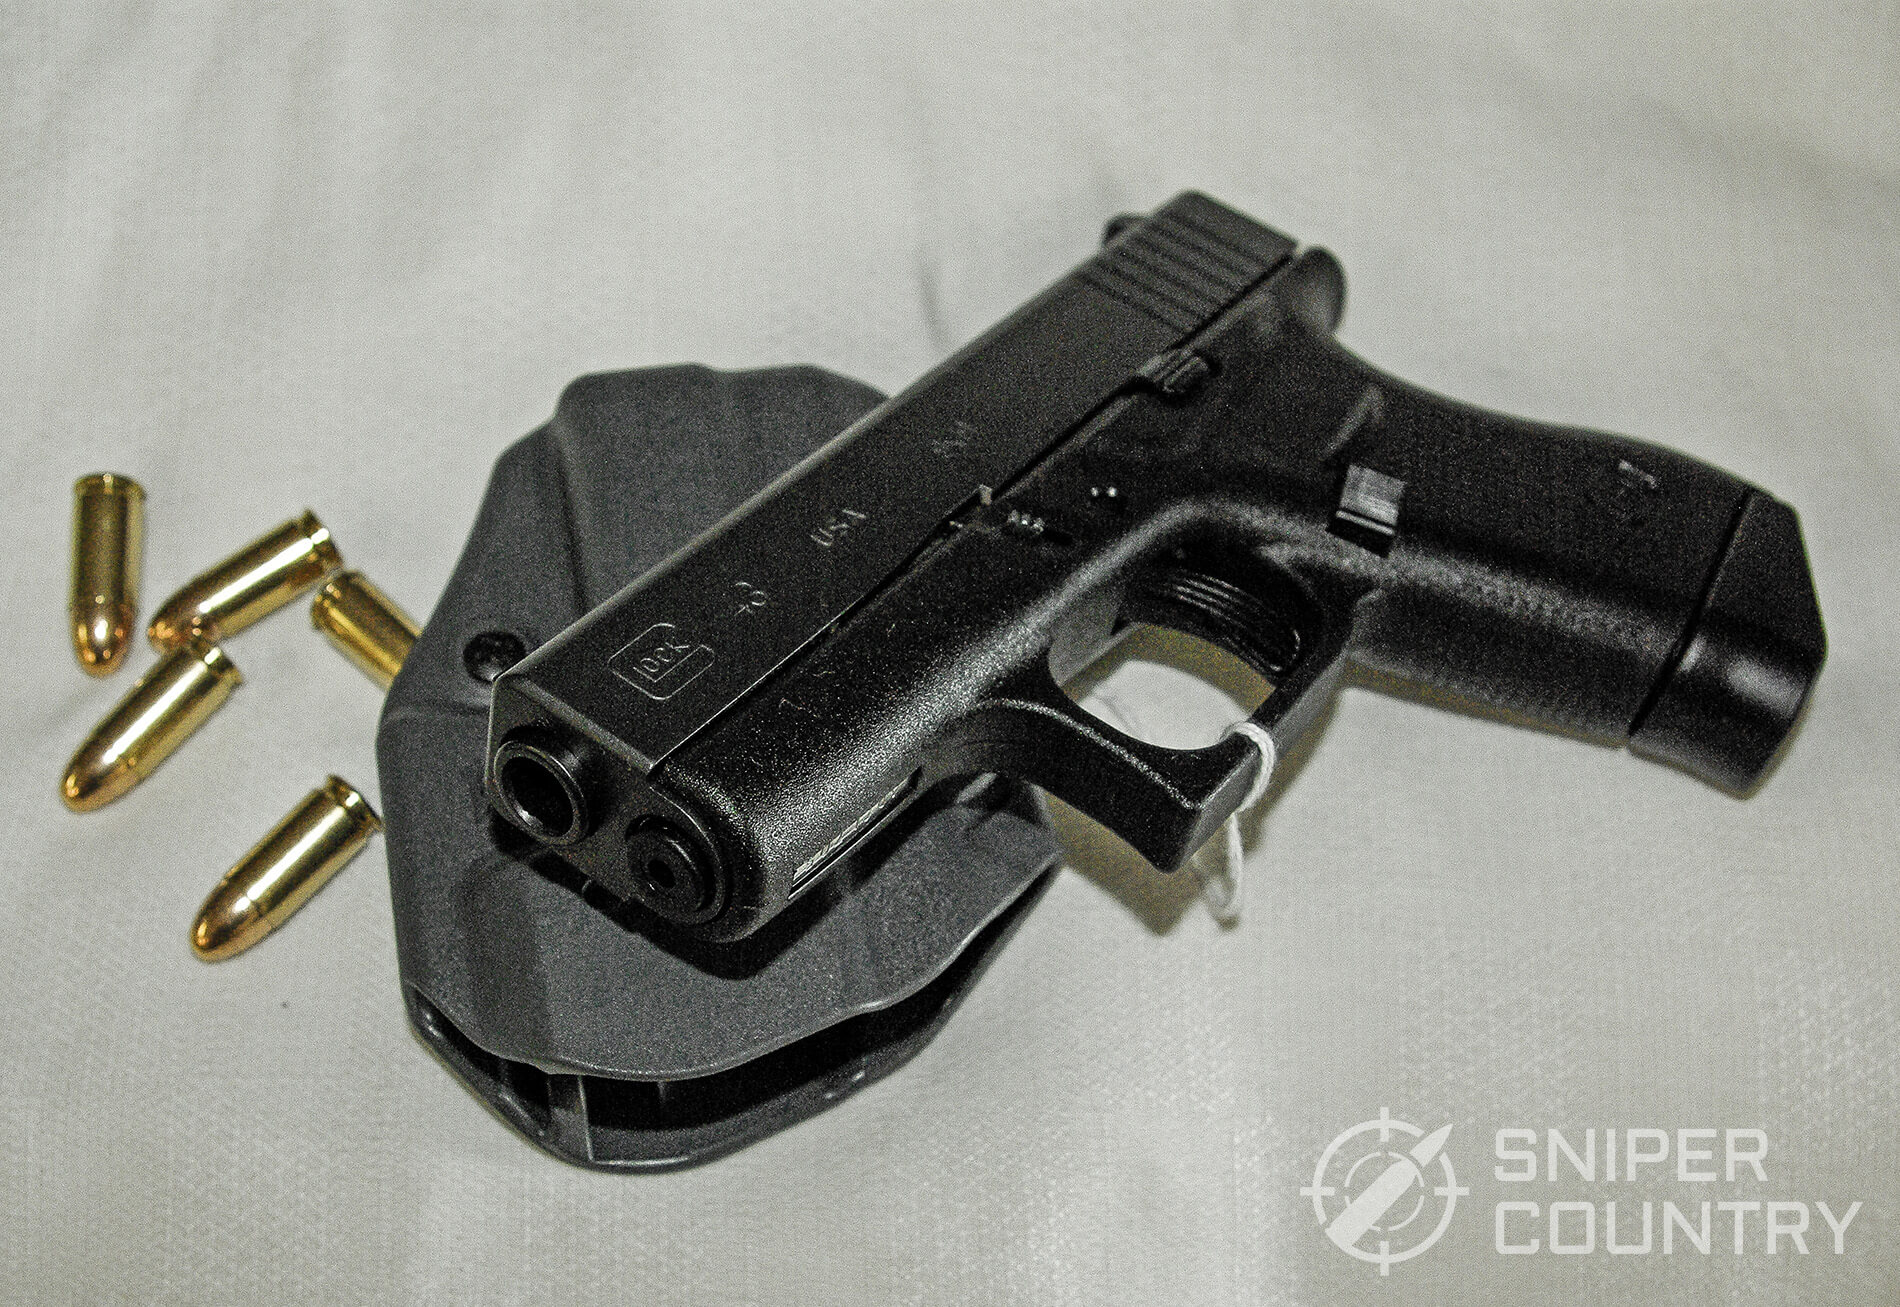 Subcompact glock and ammo